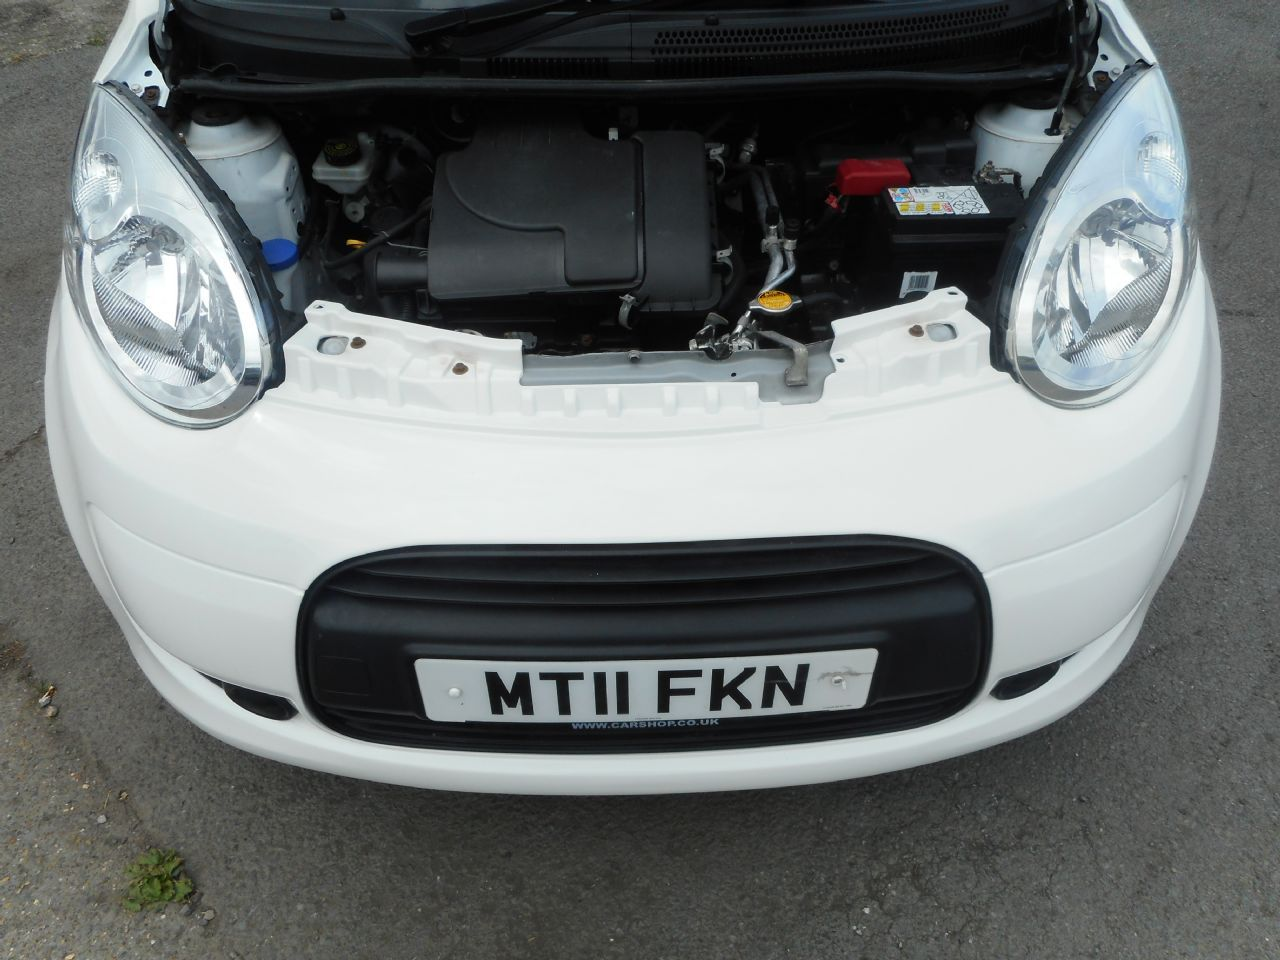 CITROEN C1 1.0i 68hp VTR (2011) - Picture 18